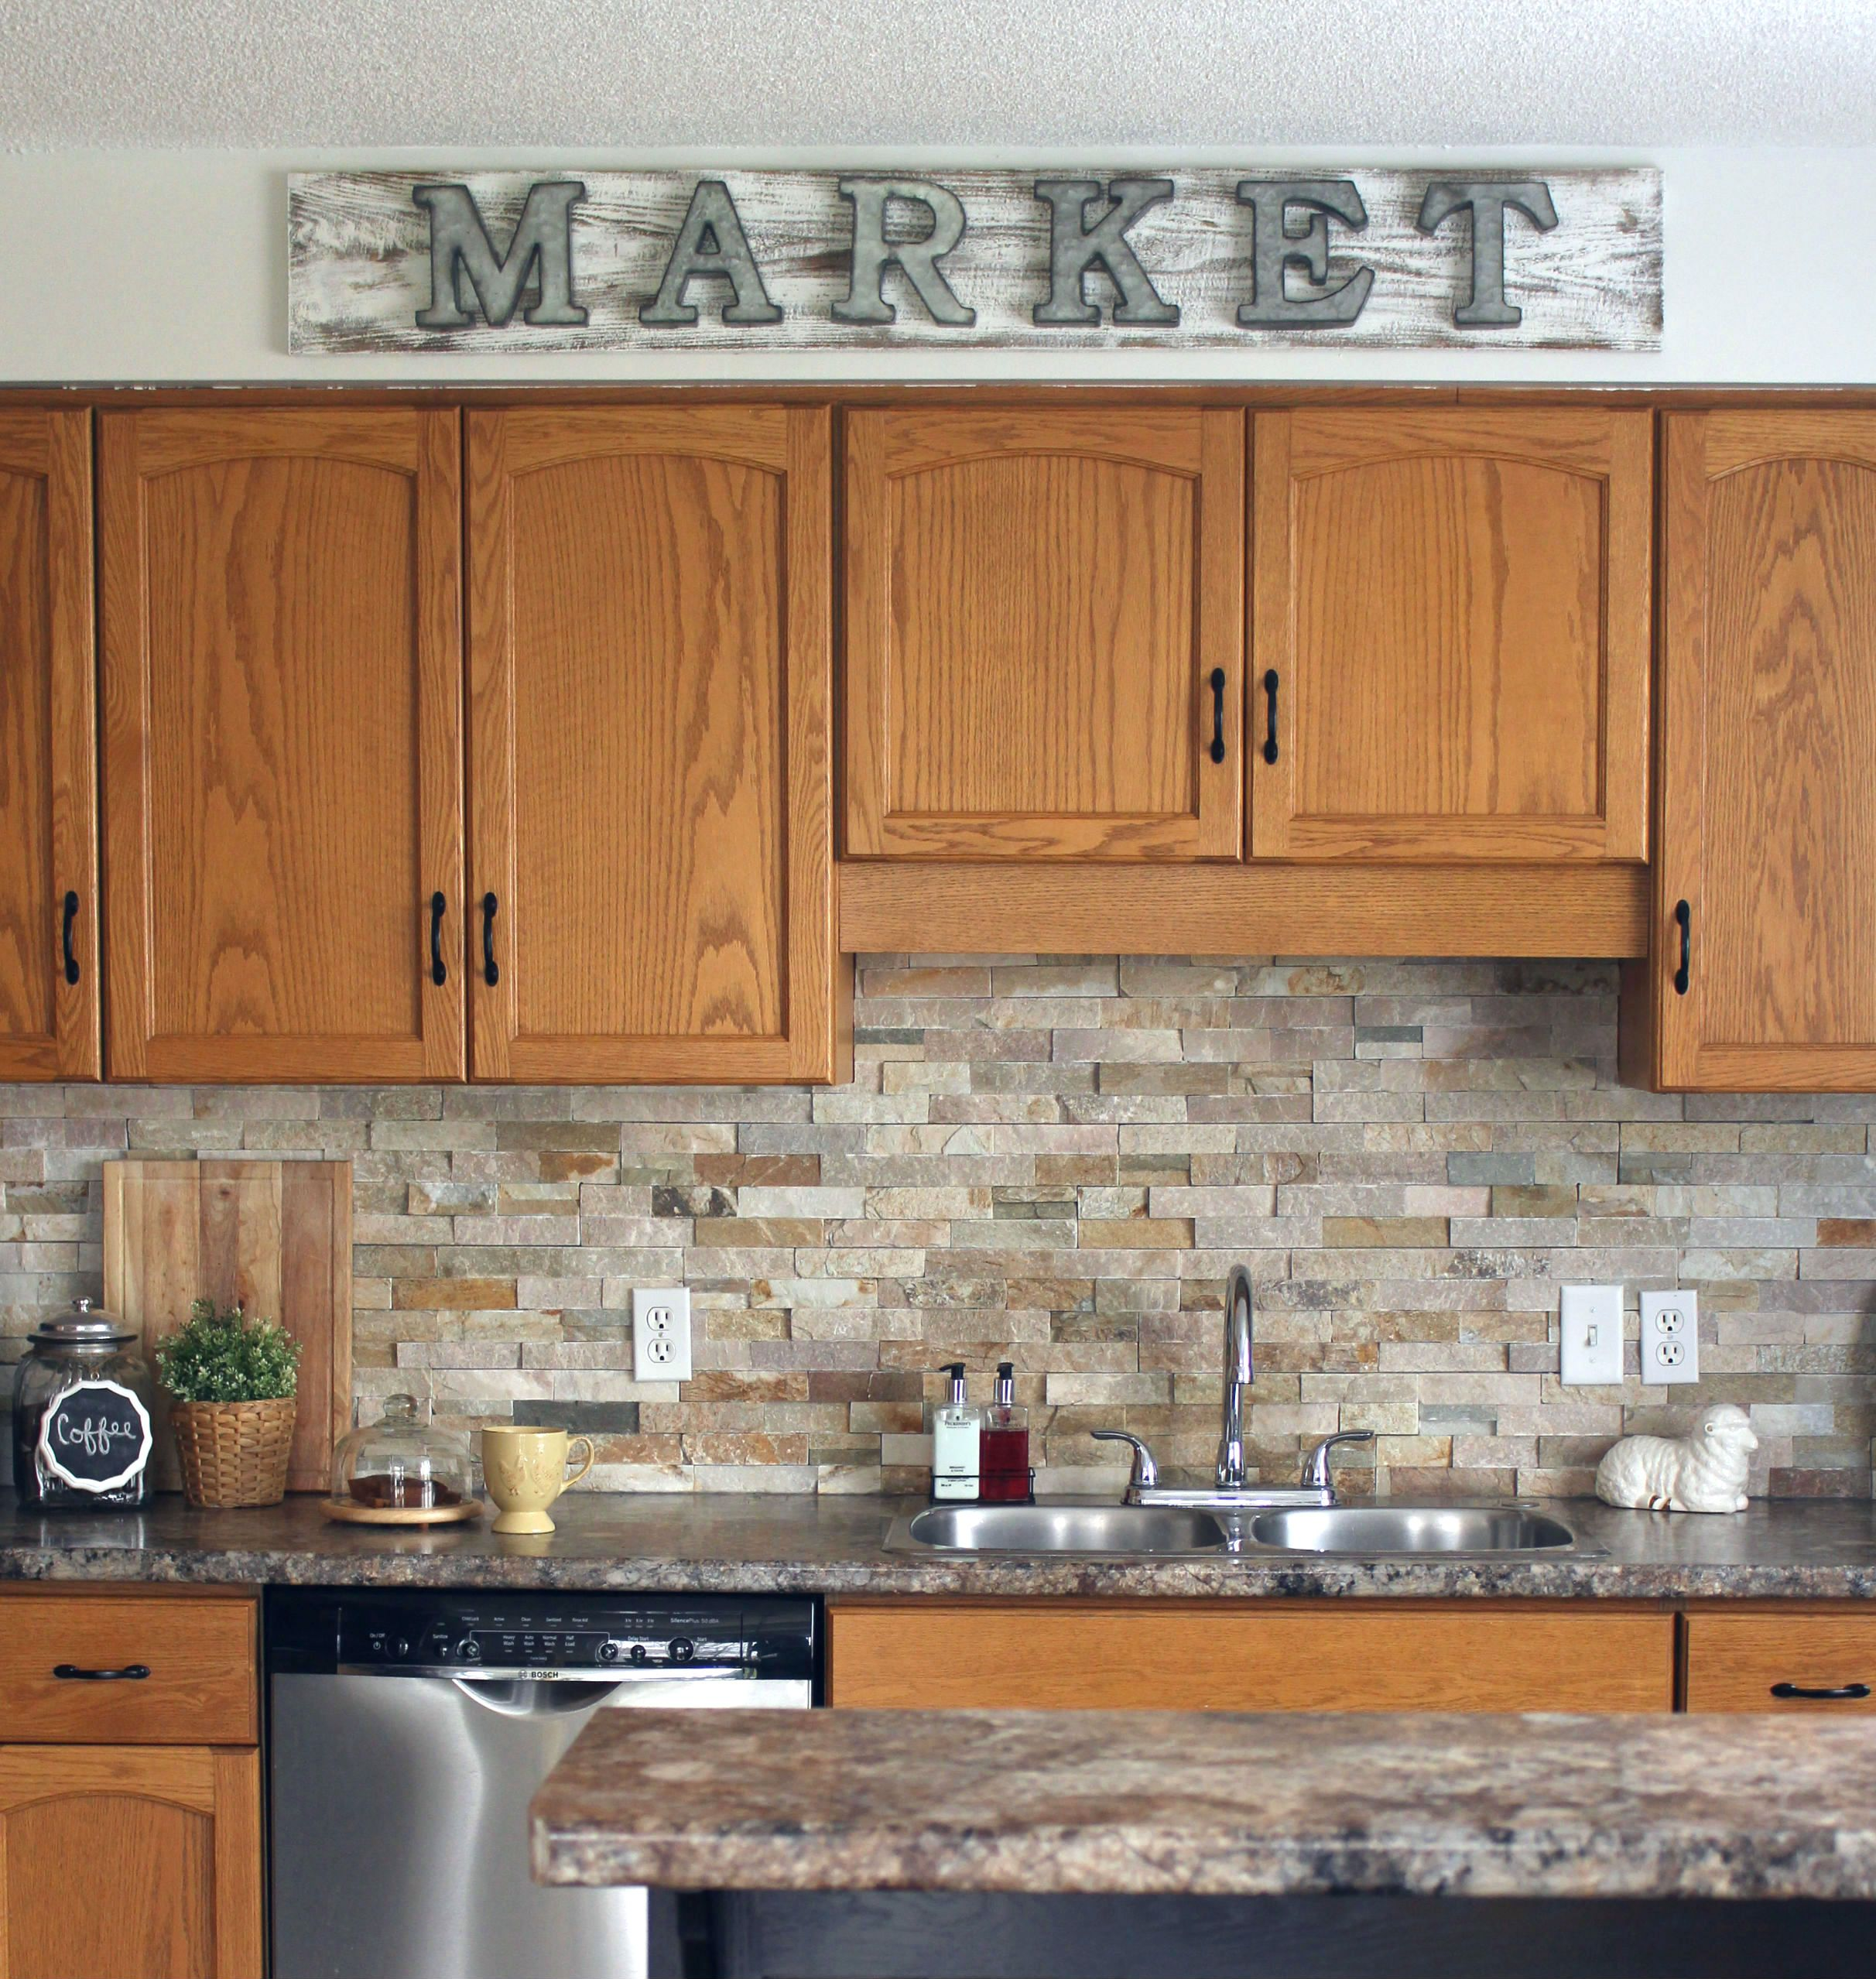 How To Make A Galvanized Market Sign Kitchen remodel